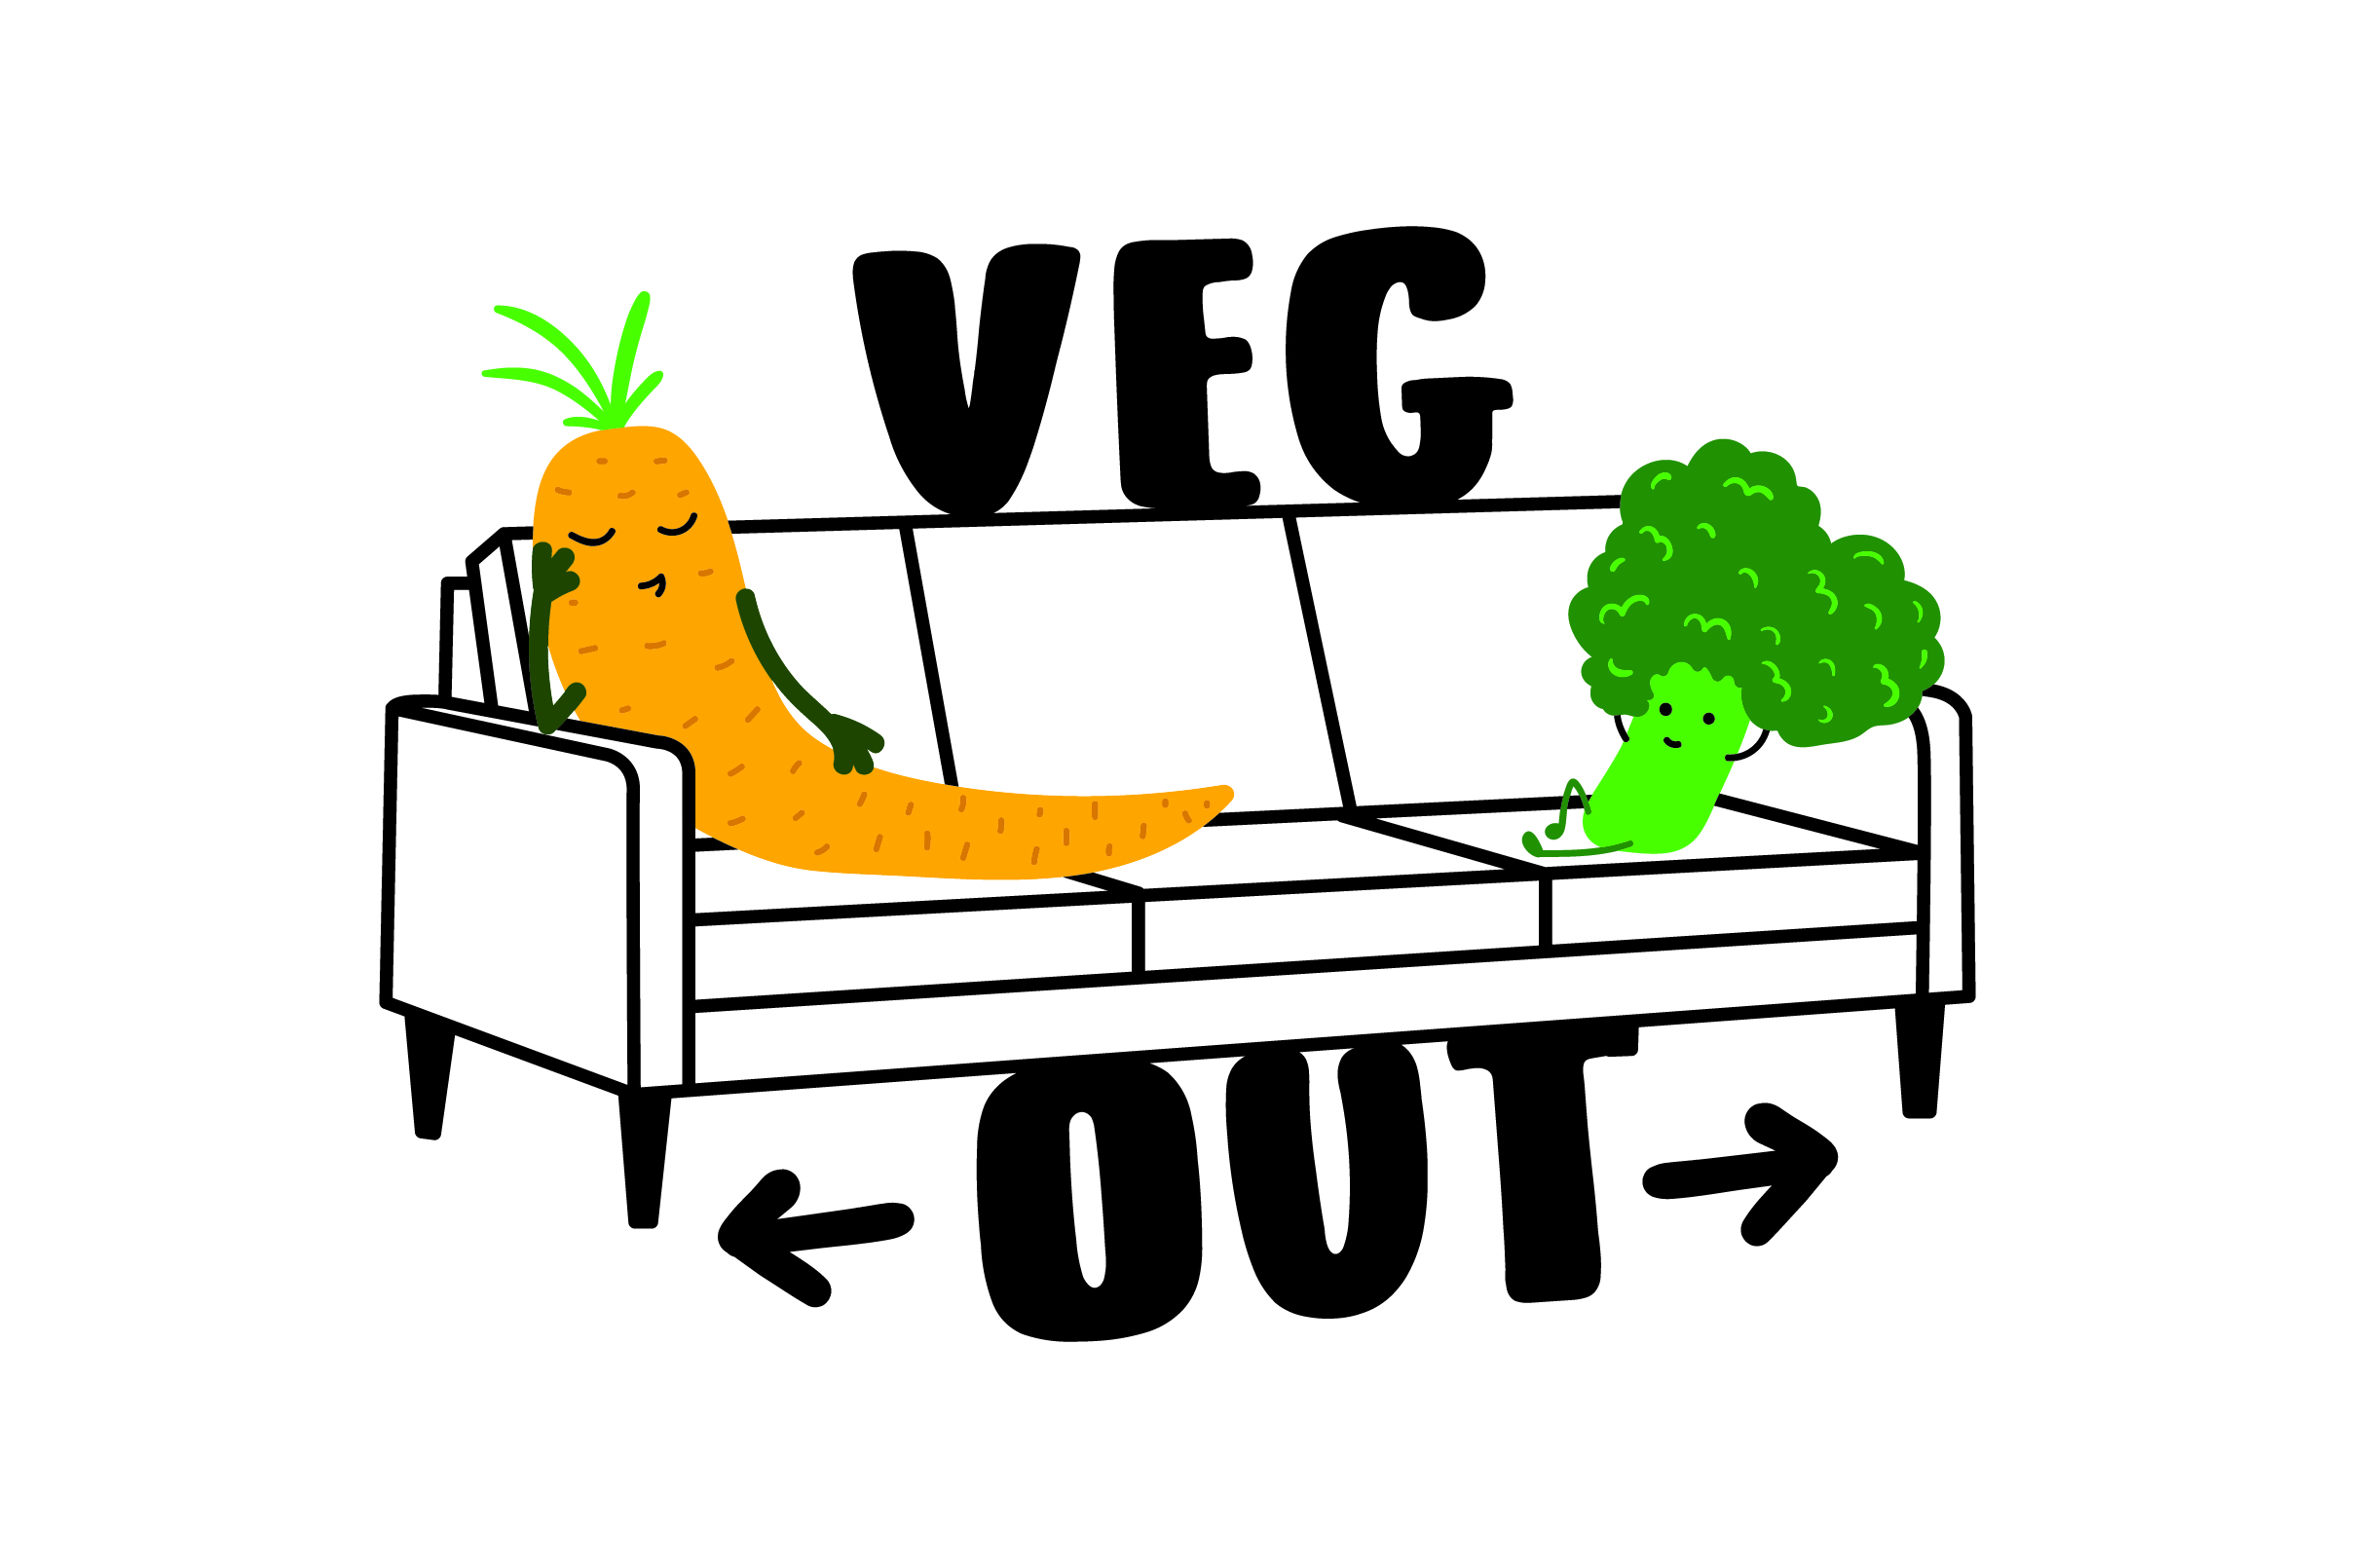 Download Free Veg Out Svg Cut File By Creative Fabrica Crafts Creative Fabrica for Cricut Explore, Silhouette and other cutting machines.